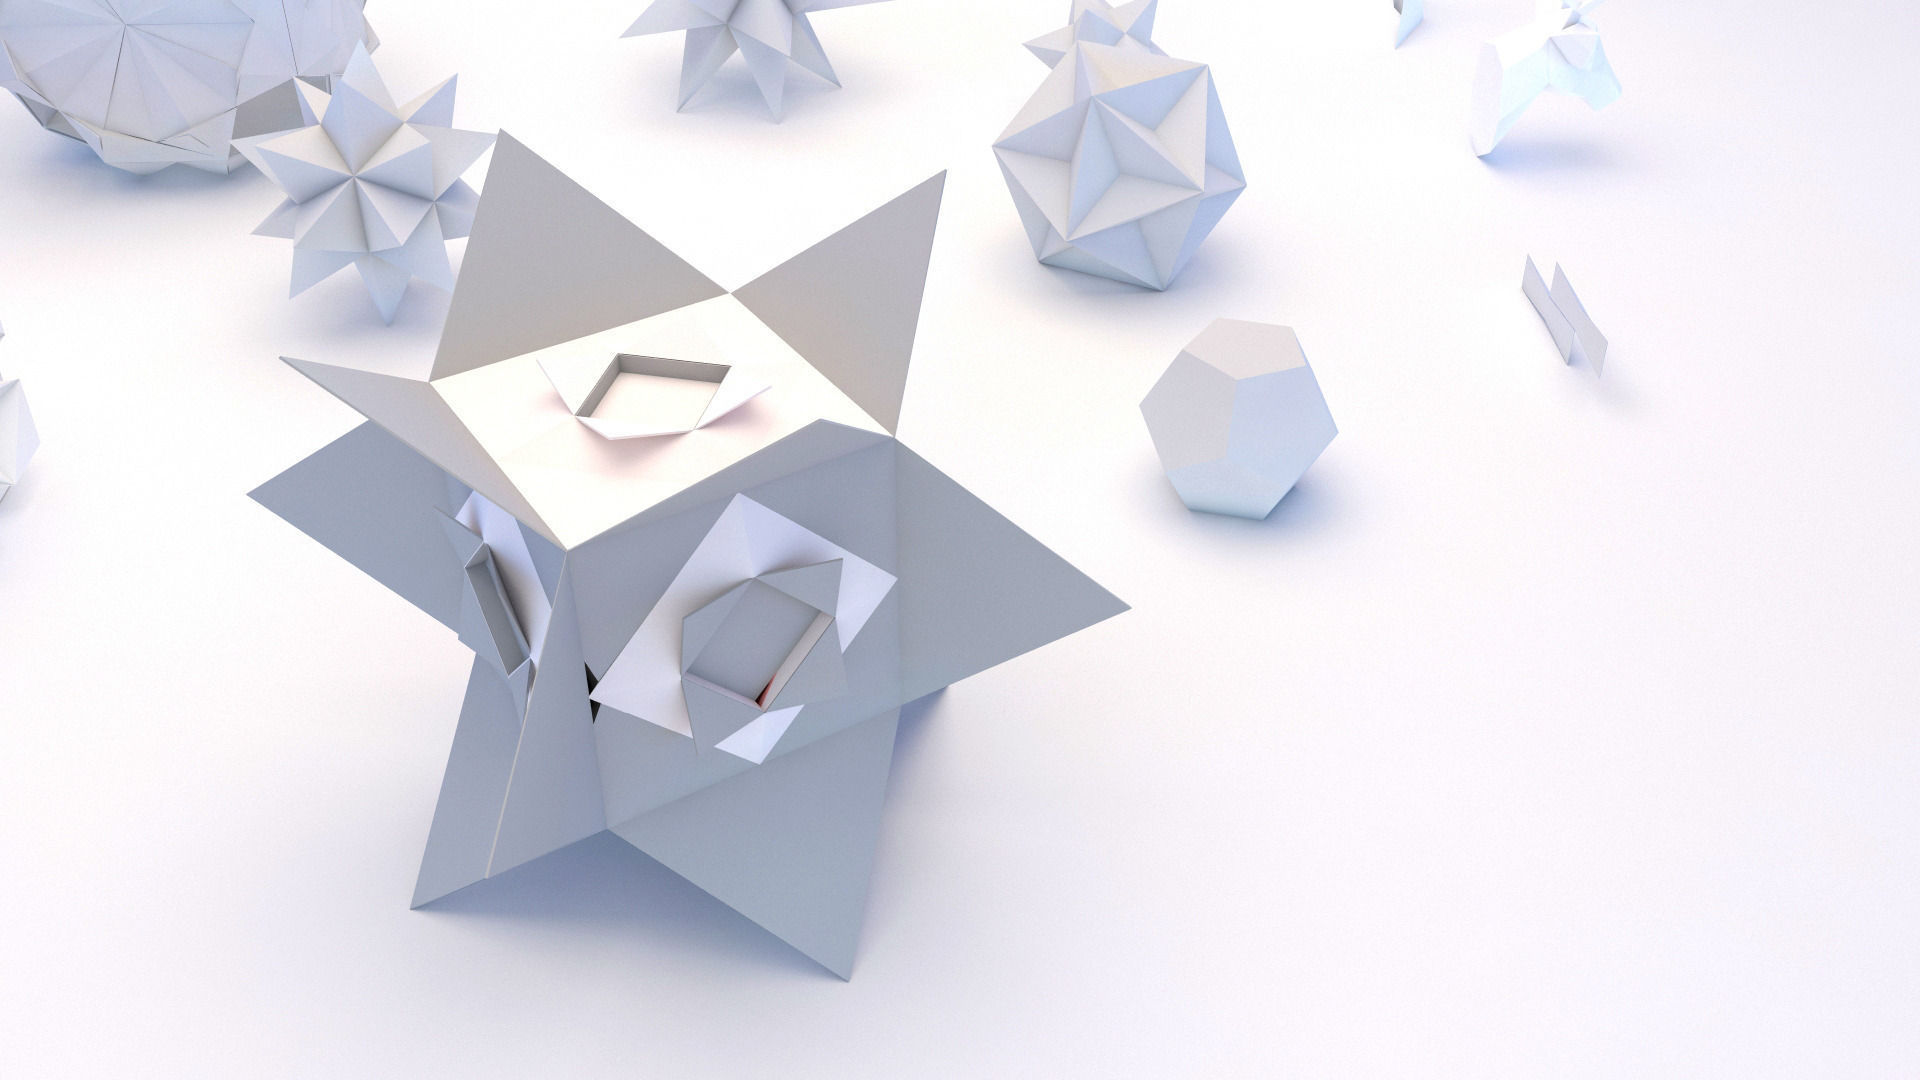 Origami Geometric 3D Model MAX OBJ 3DS FBX MTL | CGTrader.com - photo#46